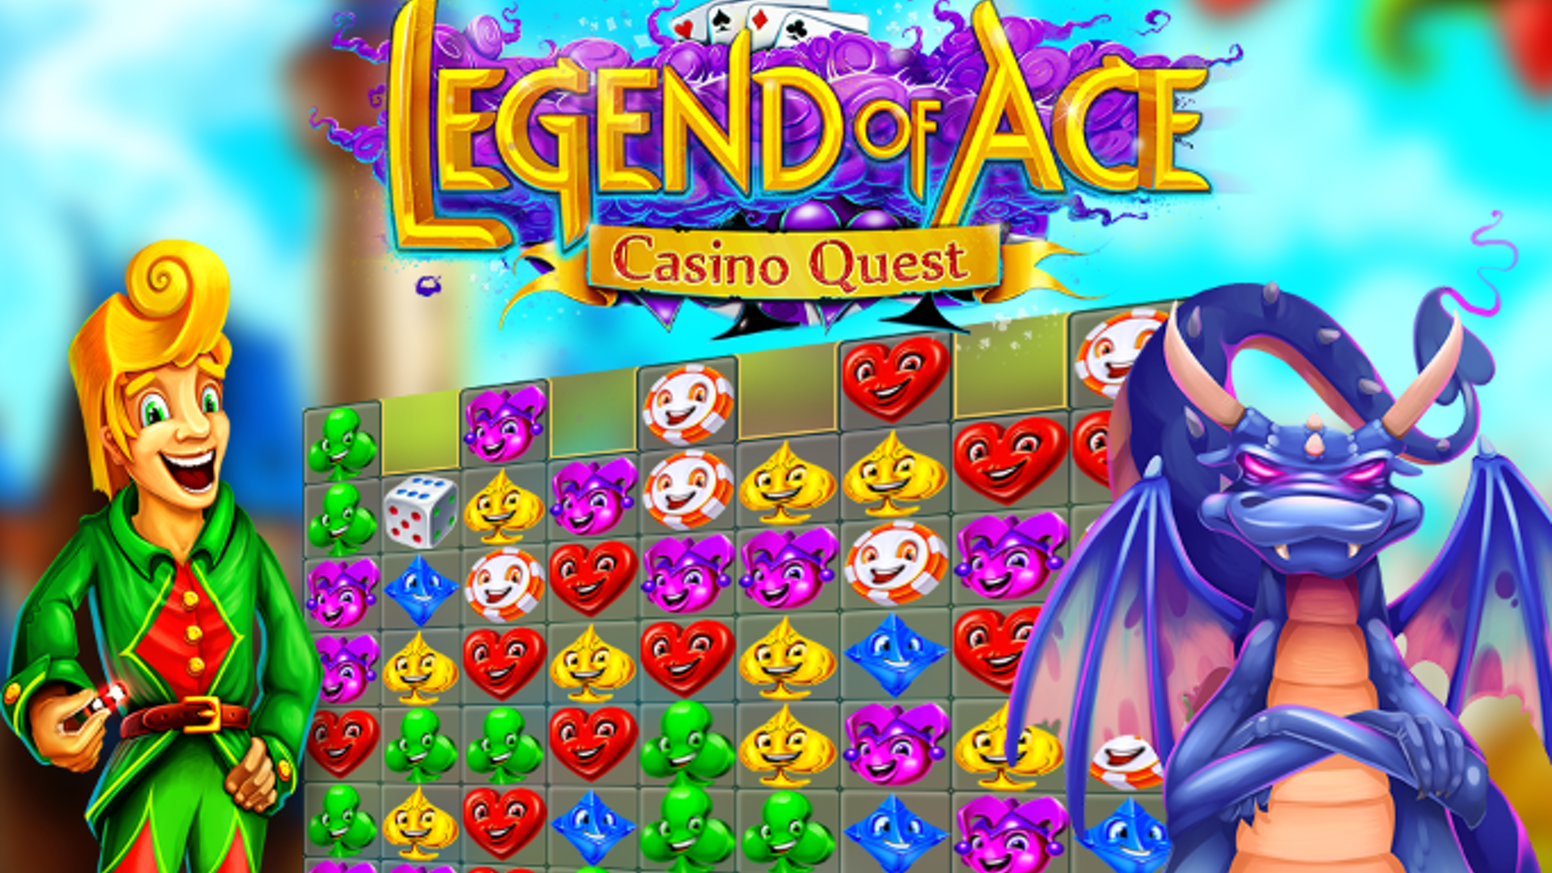 The first-ever social game...made socially. Save the Queen in this match-3 puzzle meets casino game set in medieval times.